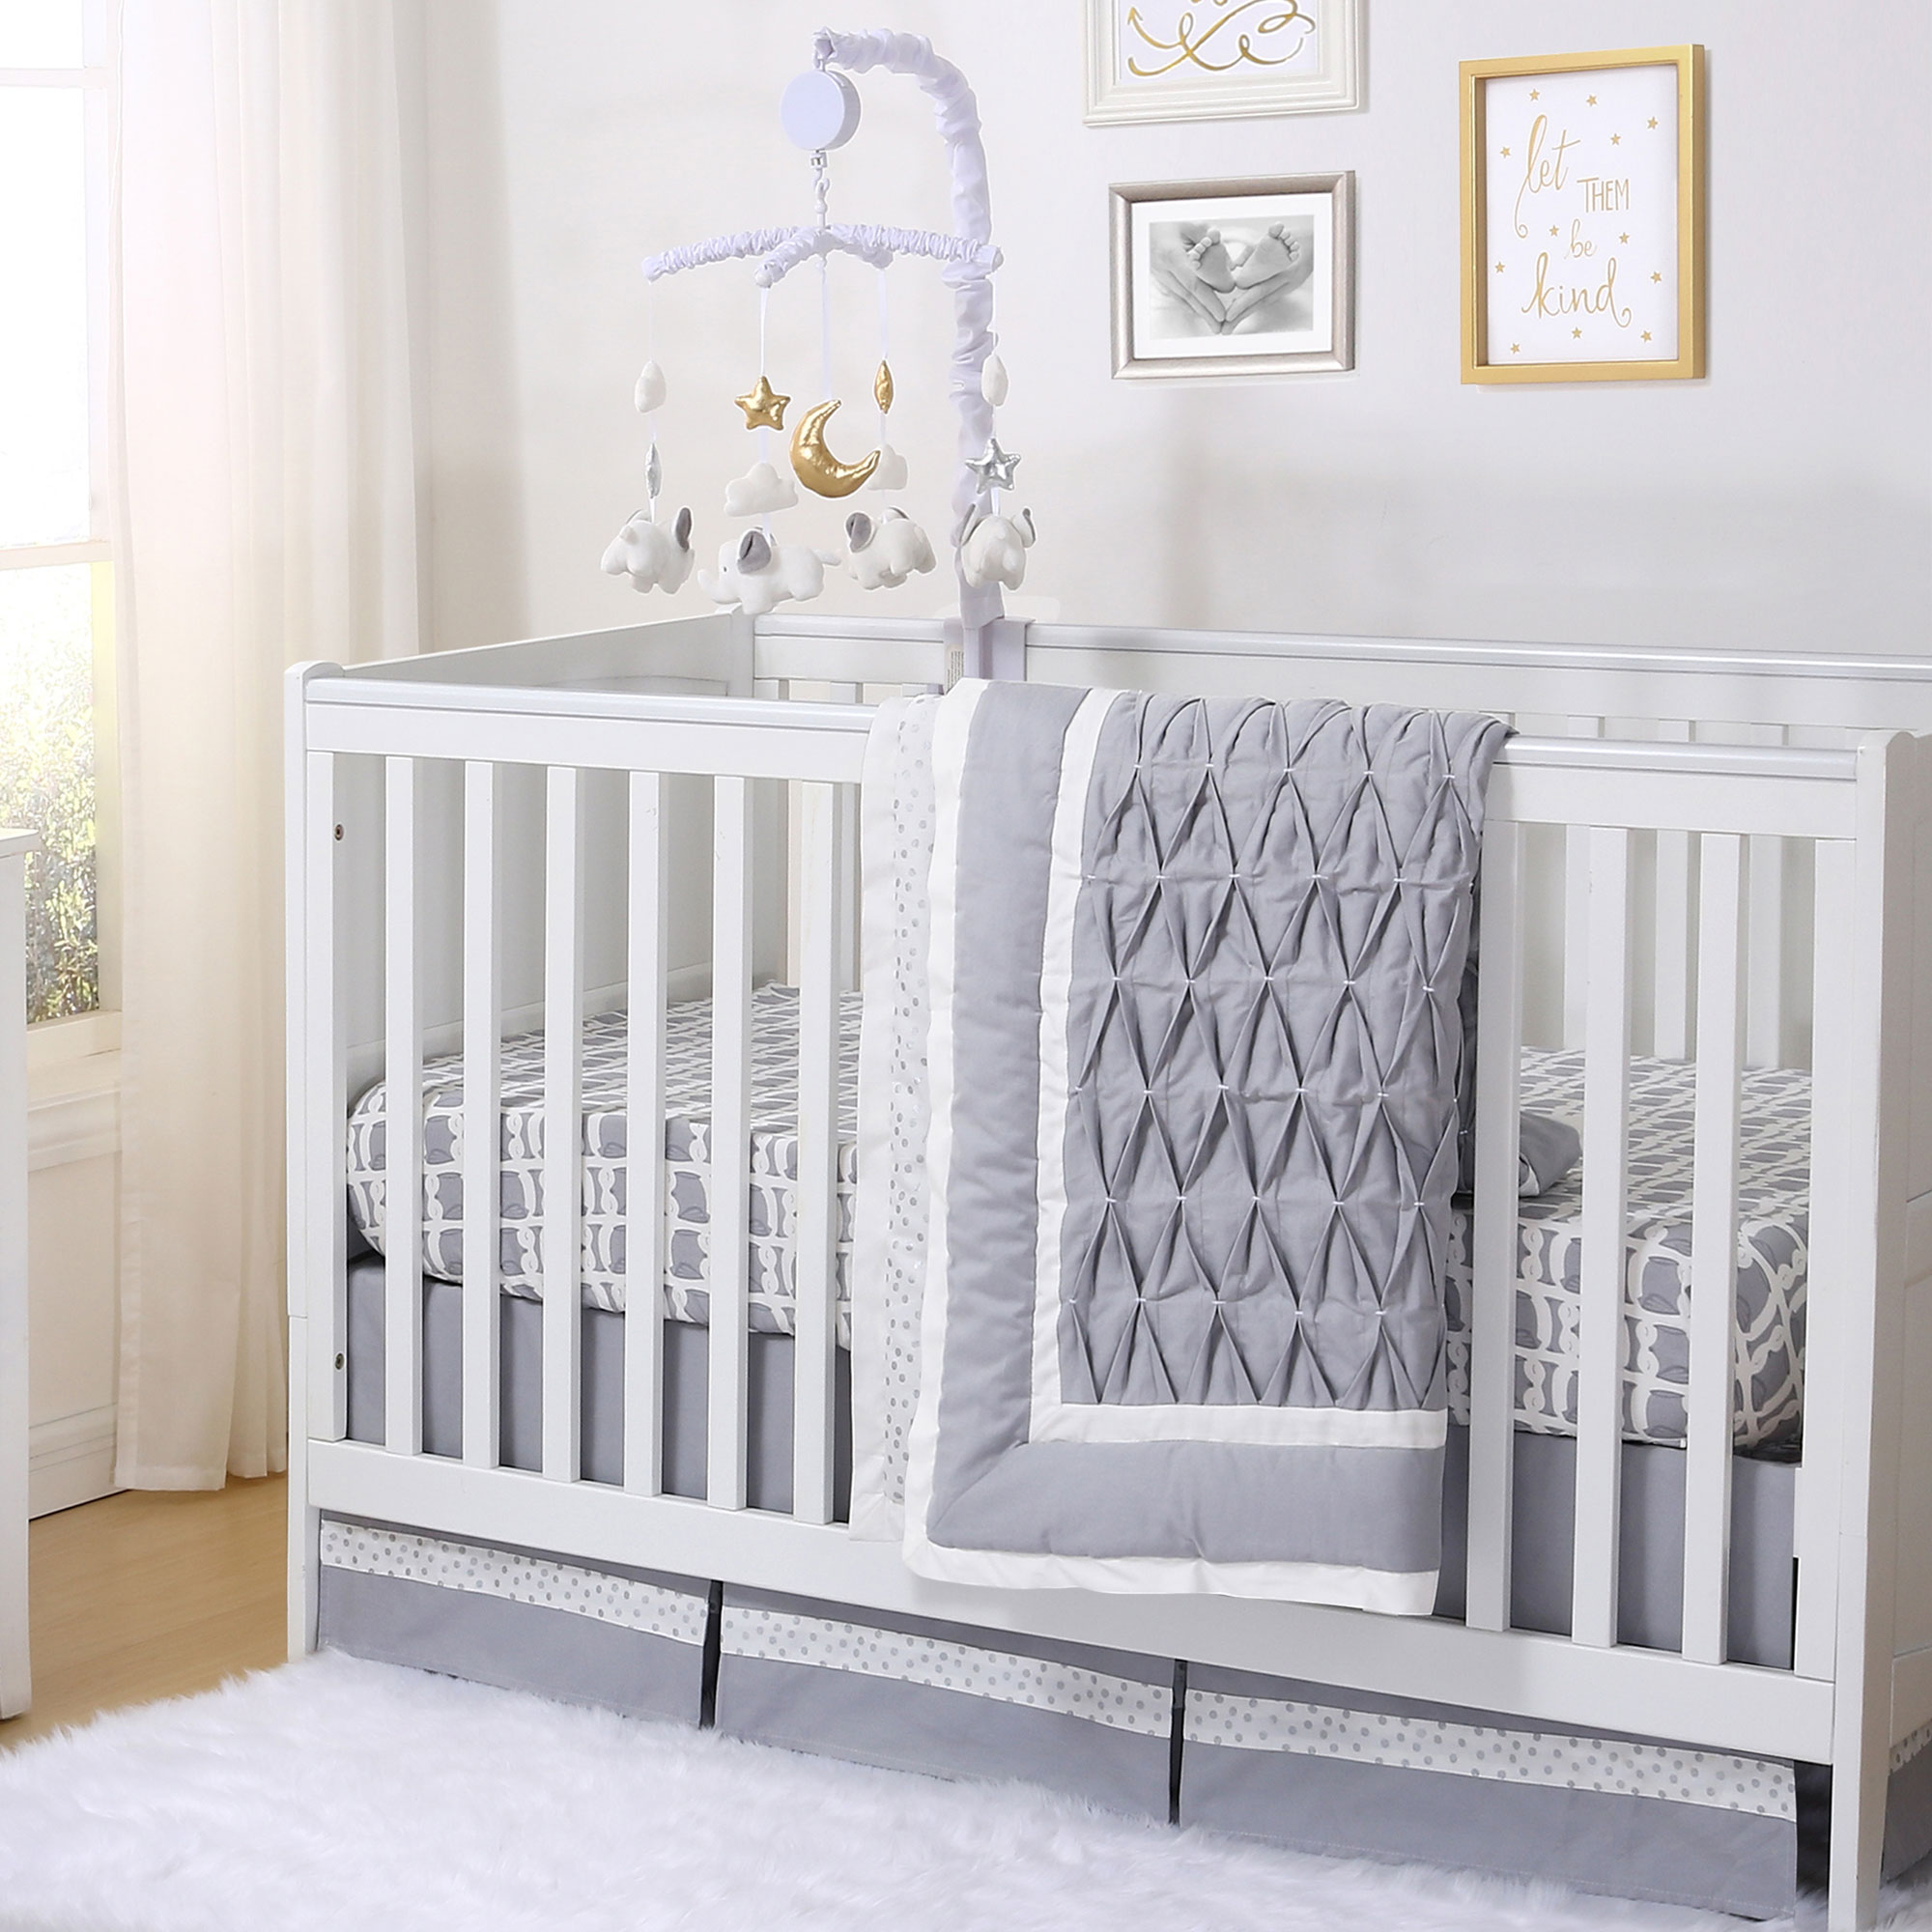 Grey Owl and Silver Dot Pleated 5 Piece Crib Bedding Set by The Peanut Shell